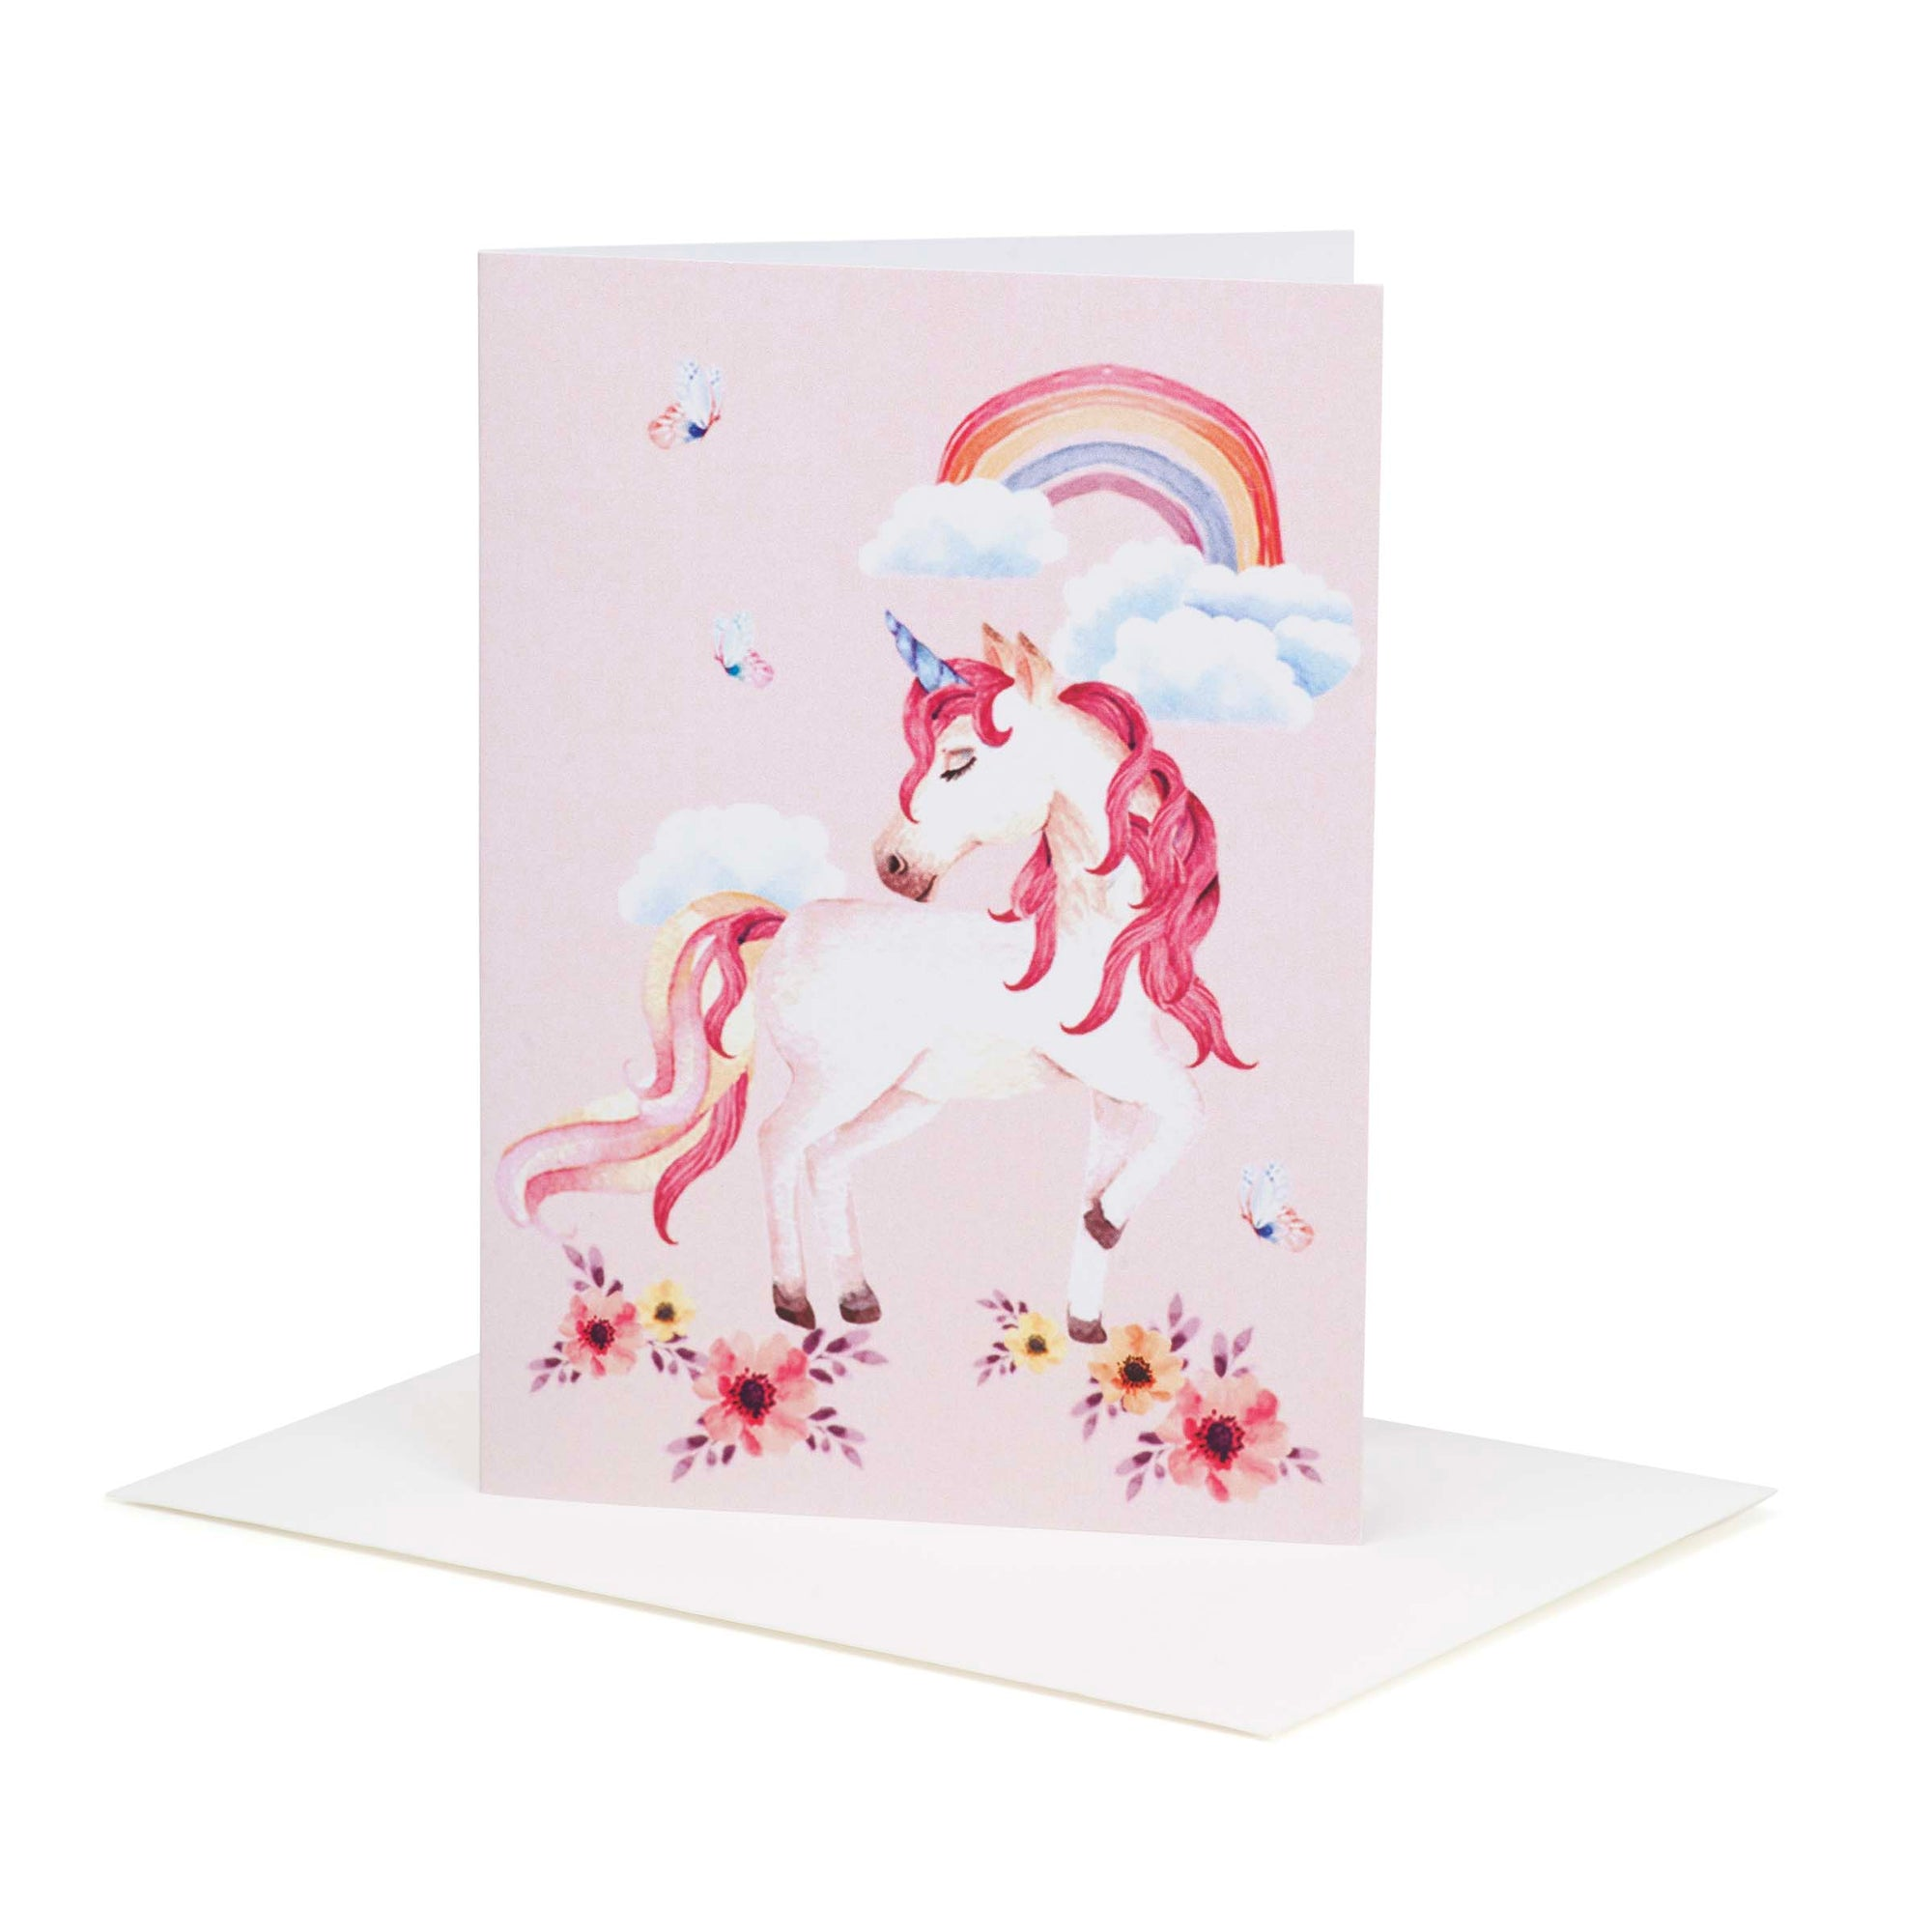 Buy Rainbow Unicorn Greeting Card - Designer Kidz | Special Occasions, Party Wear & Weddings  | Sizes 000-16 | Little Girls Party Dresses, Tutu Dresses, Flower Girl Dresses | Pay with Afterpay | Free AU Delivery Over $80